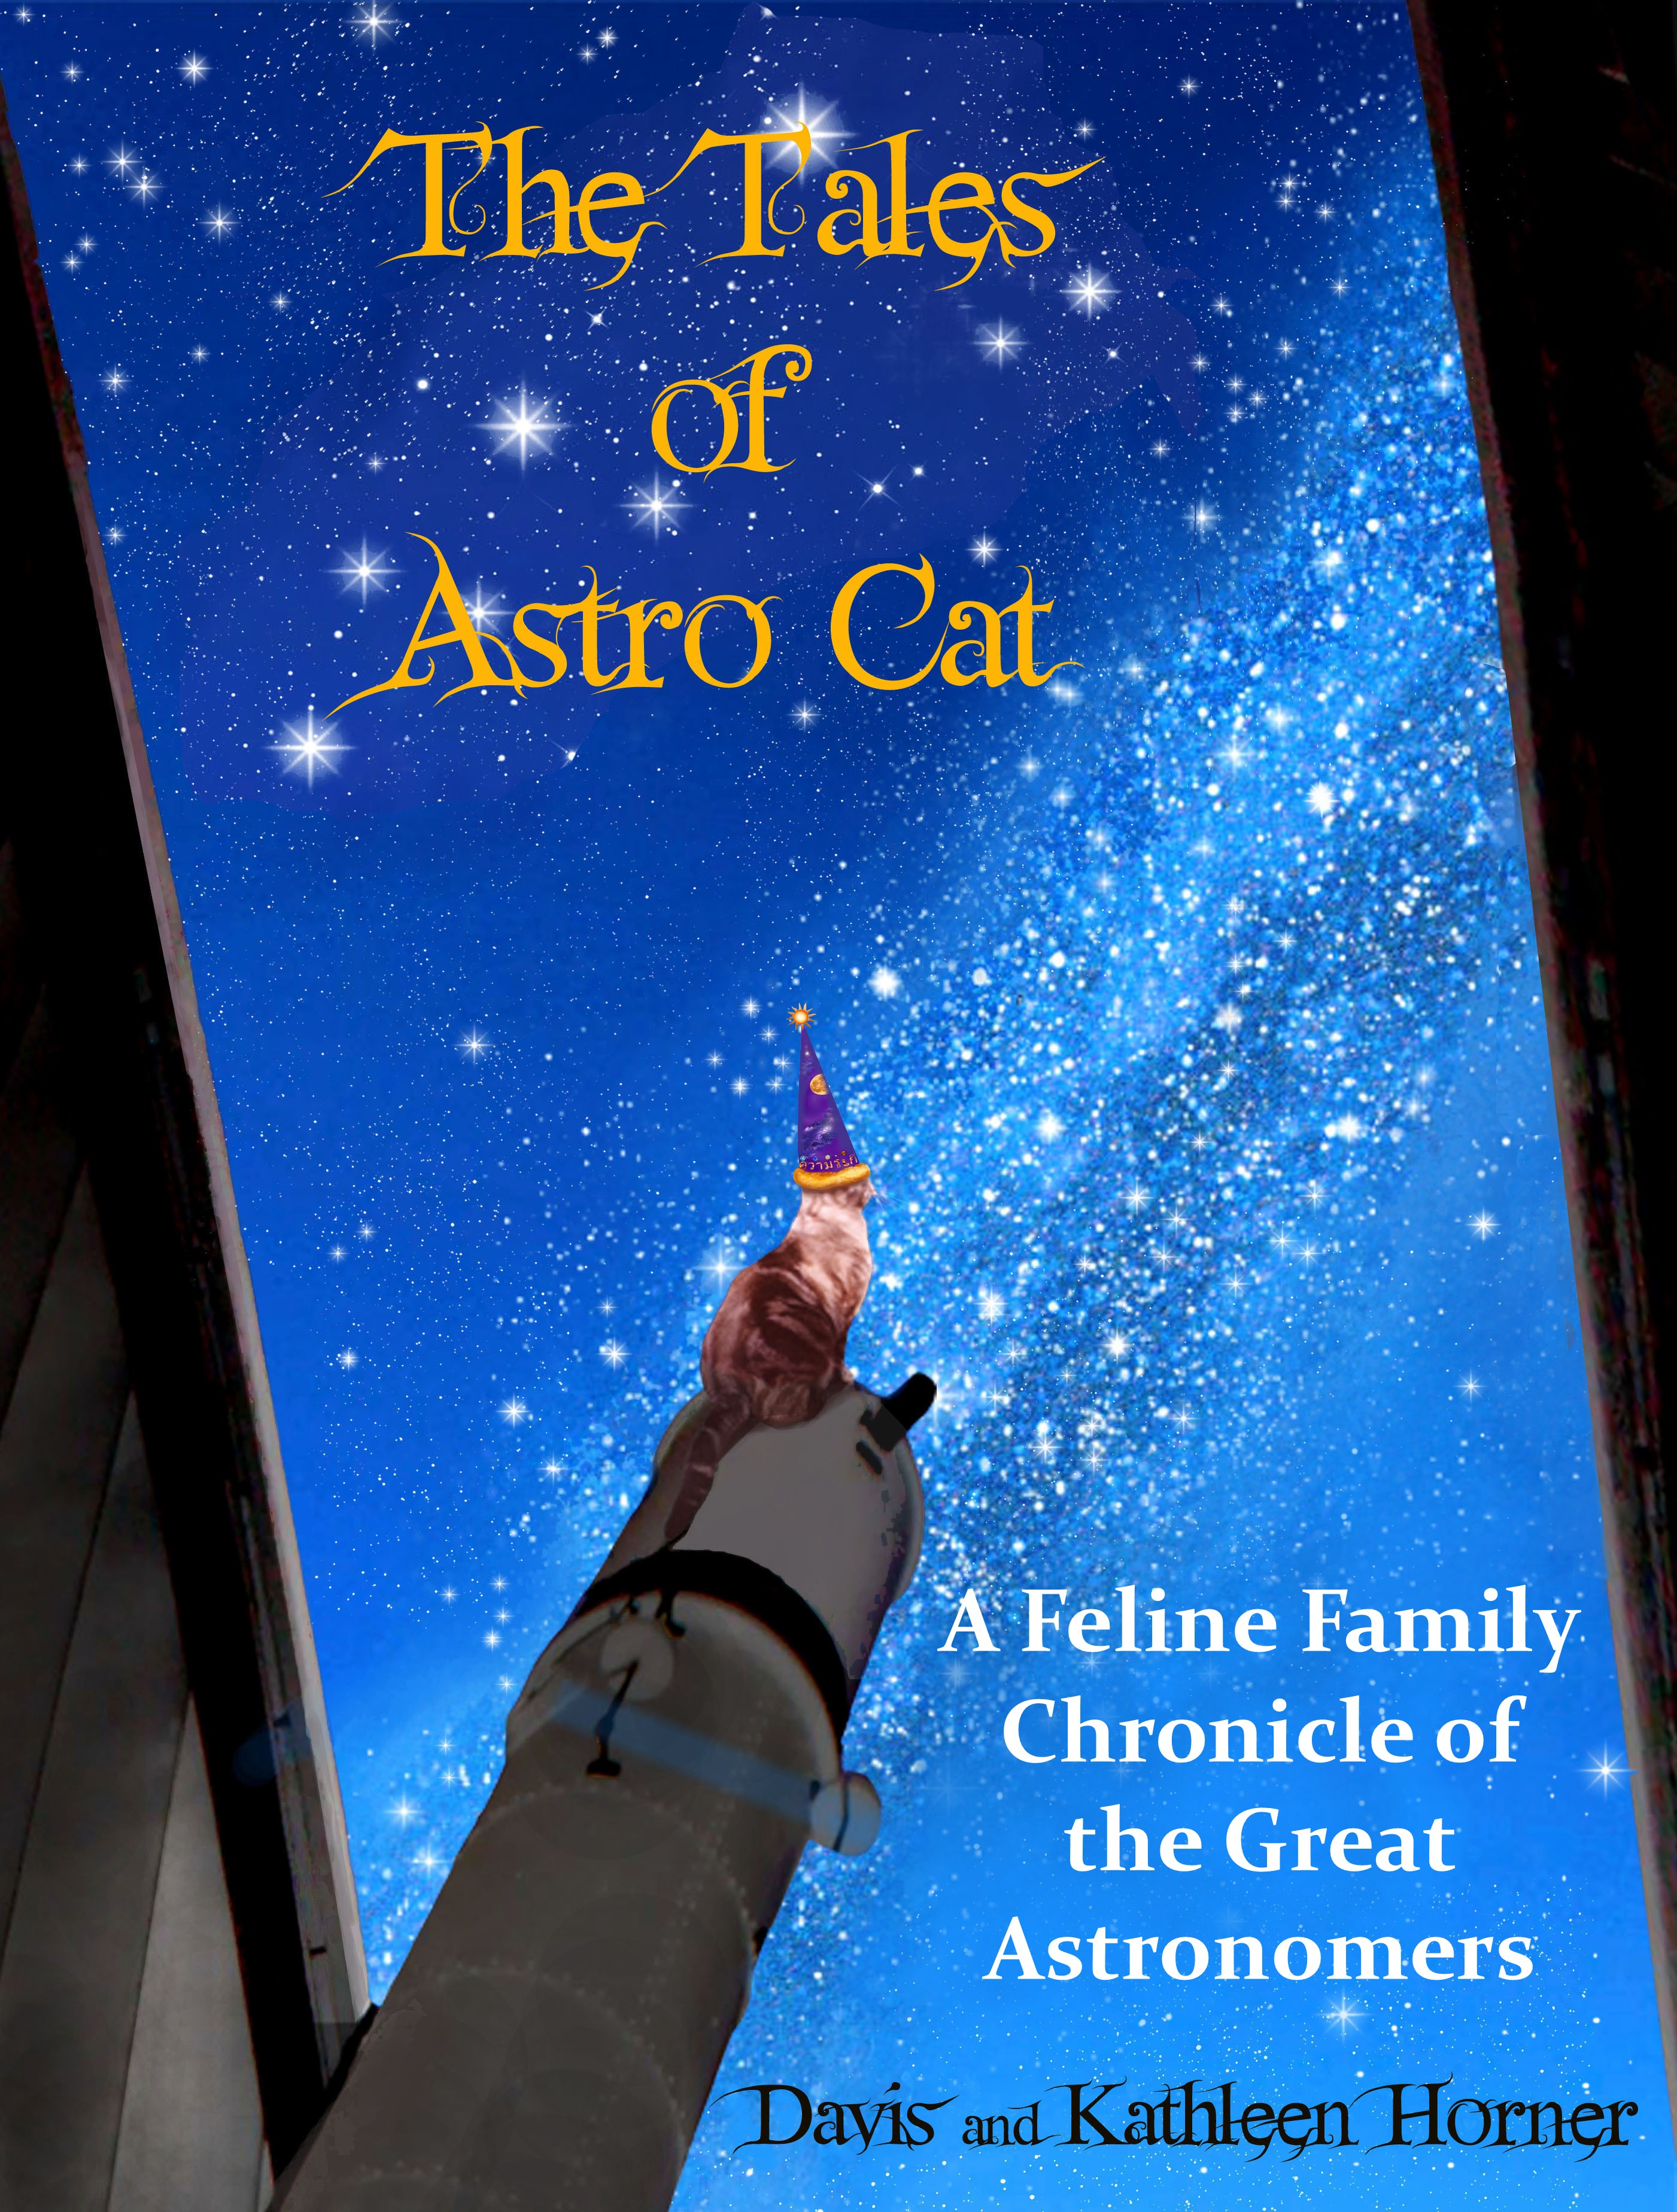 Book Cover Illustrations For Sale : Book cover illustration astrocat